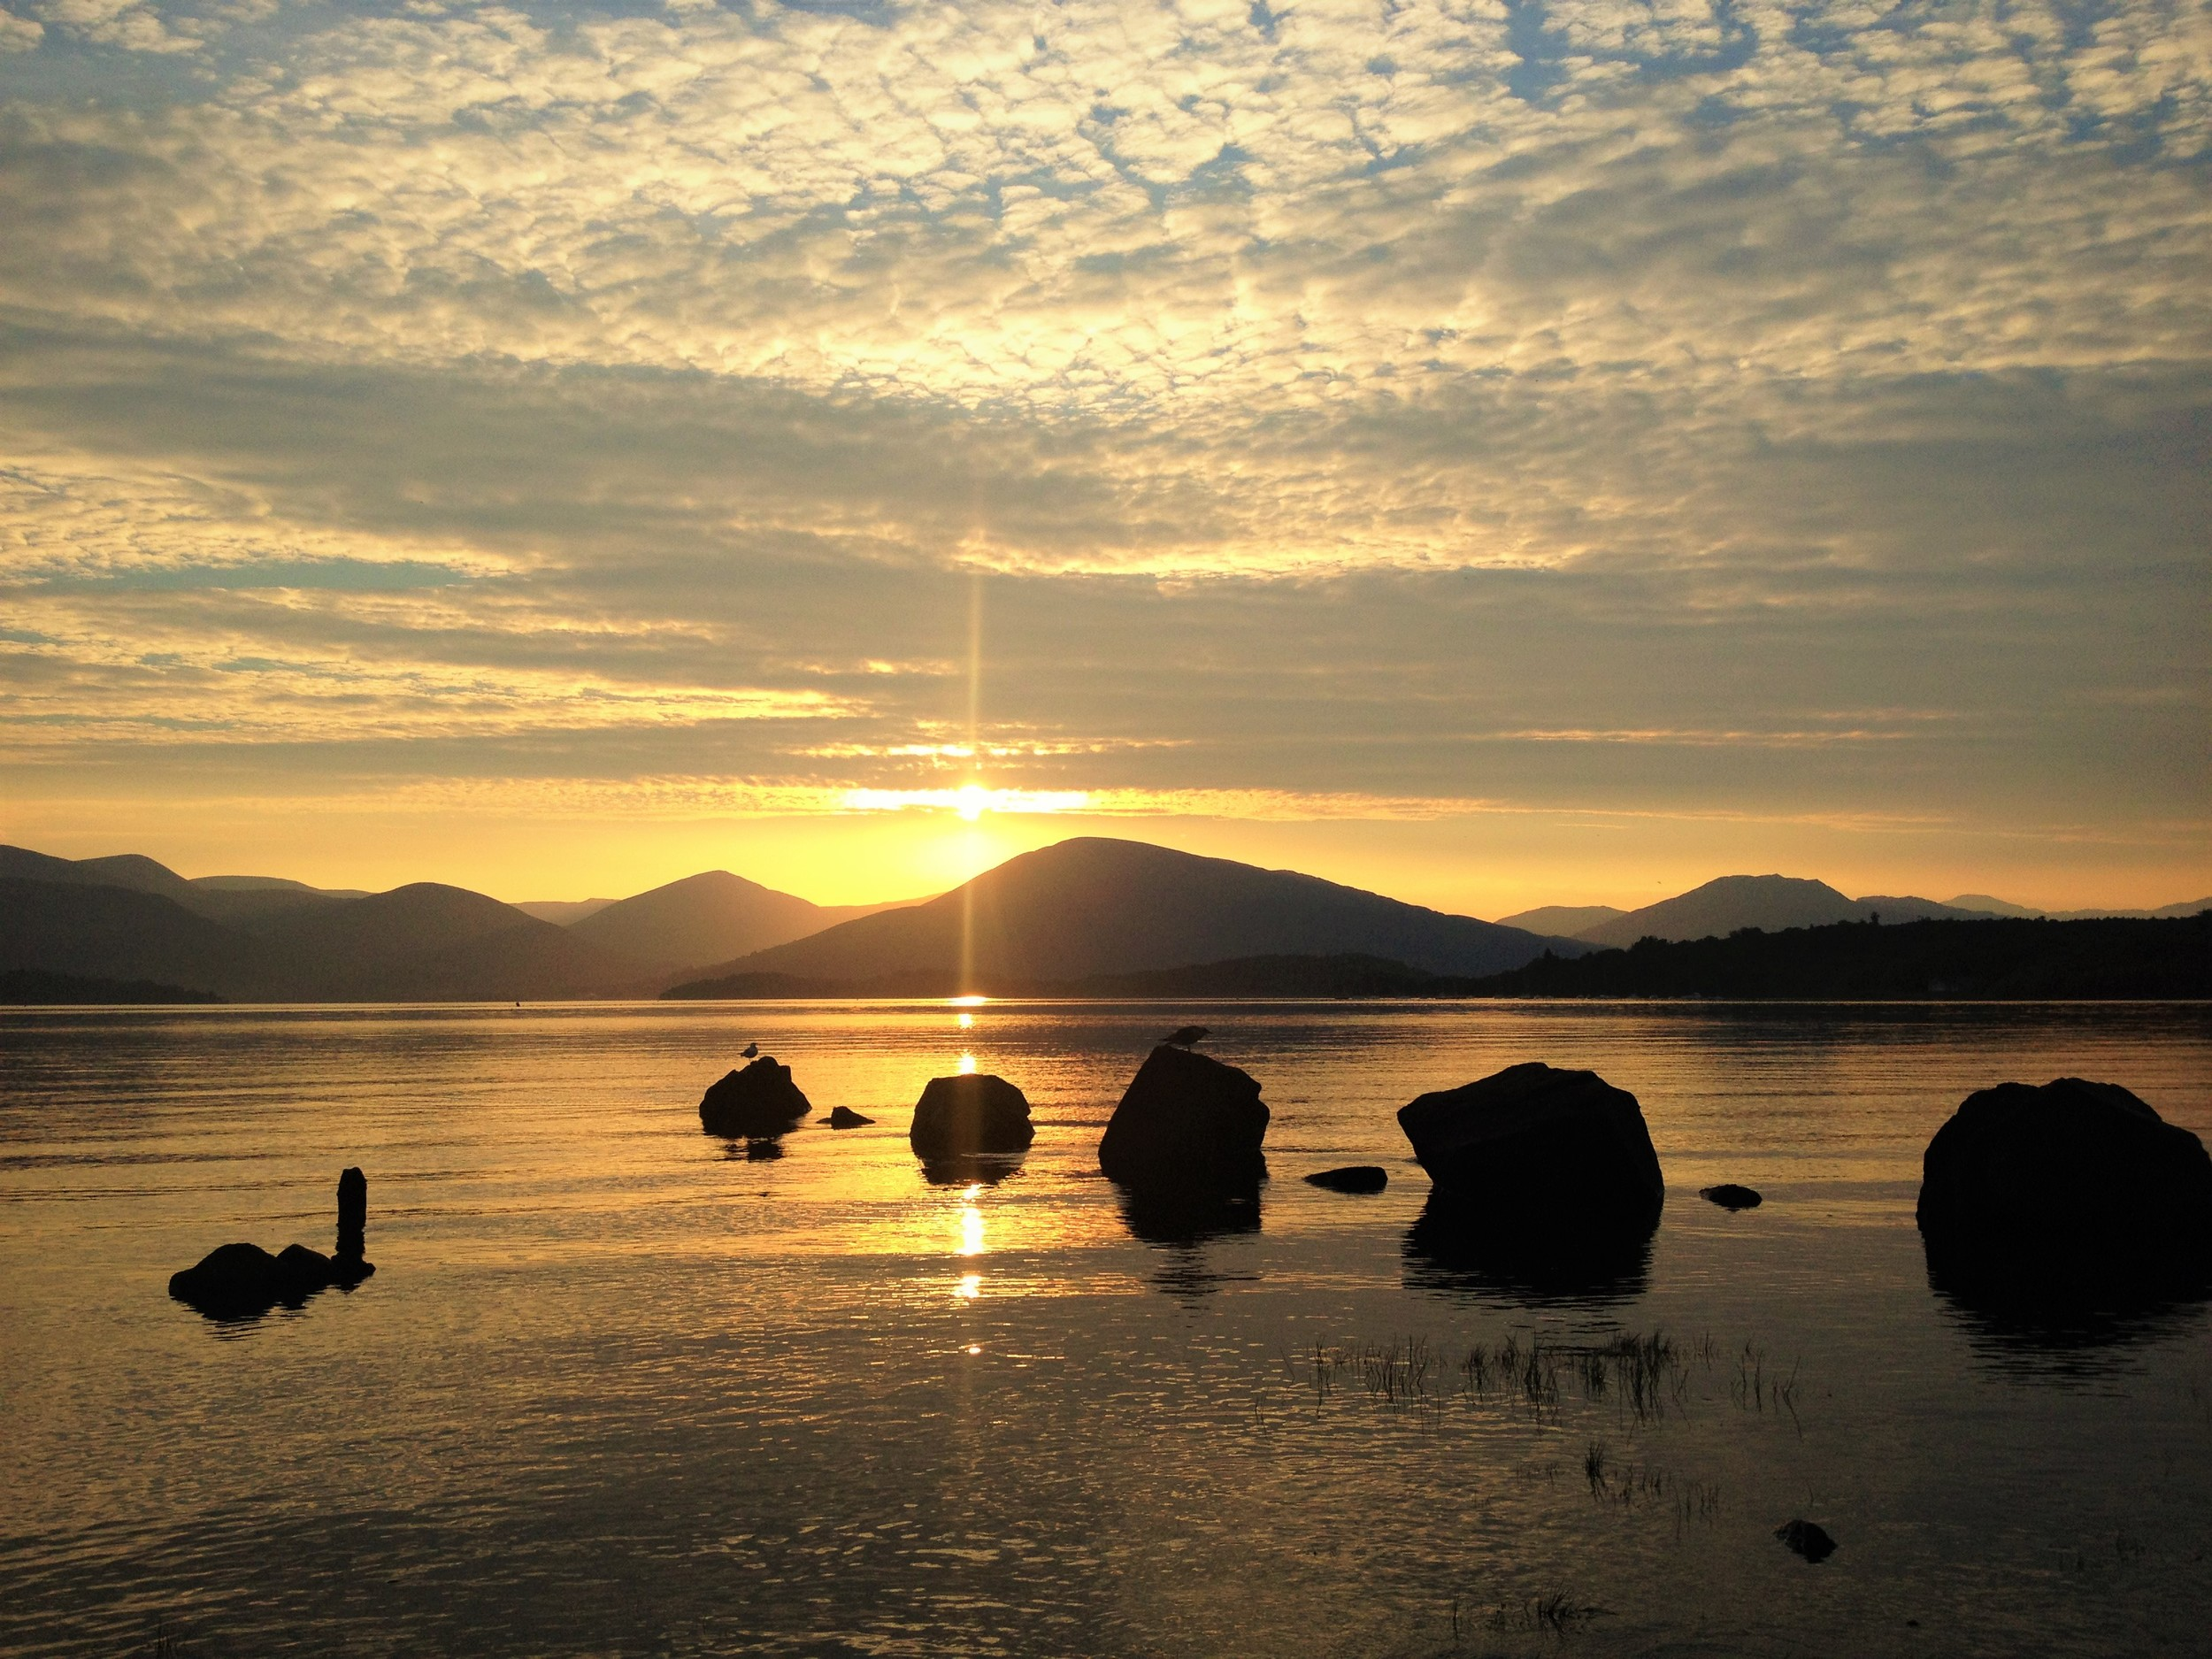 Millarochy Bay has always been a popular place for photography, it's easily accessible and produces great scenery. With the mountains over on West Loch Lomond and the islands in between, it's a great place for a sunset